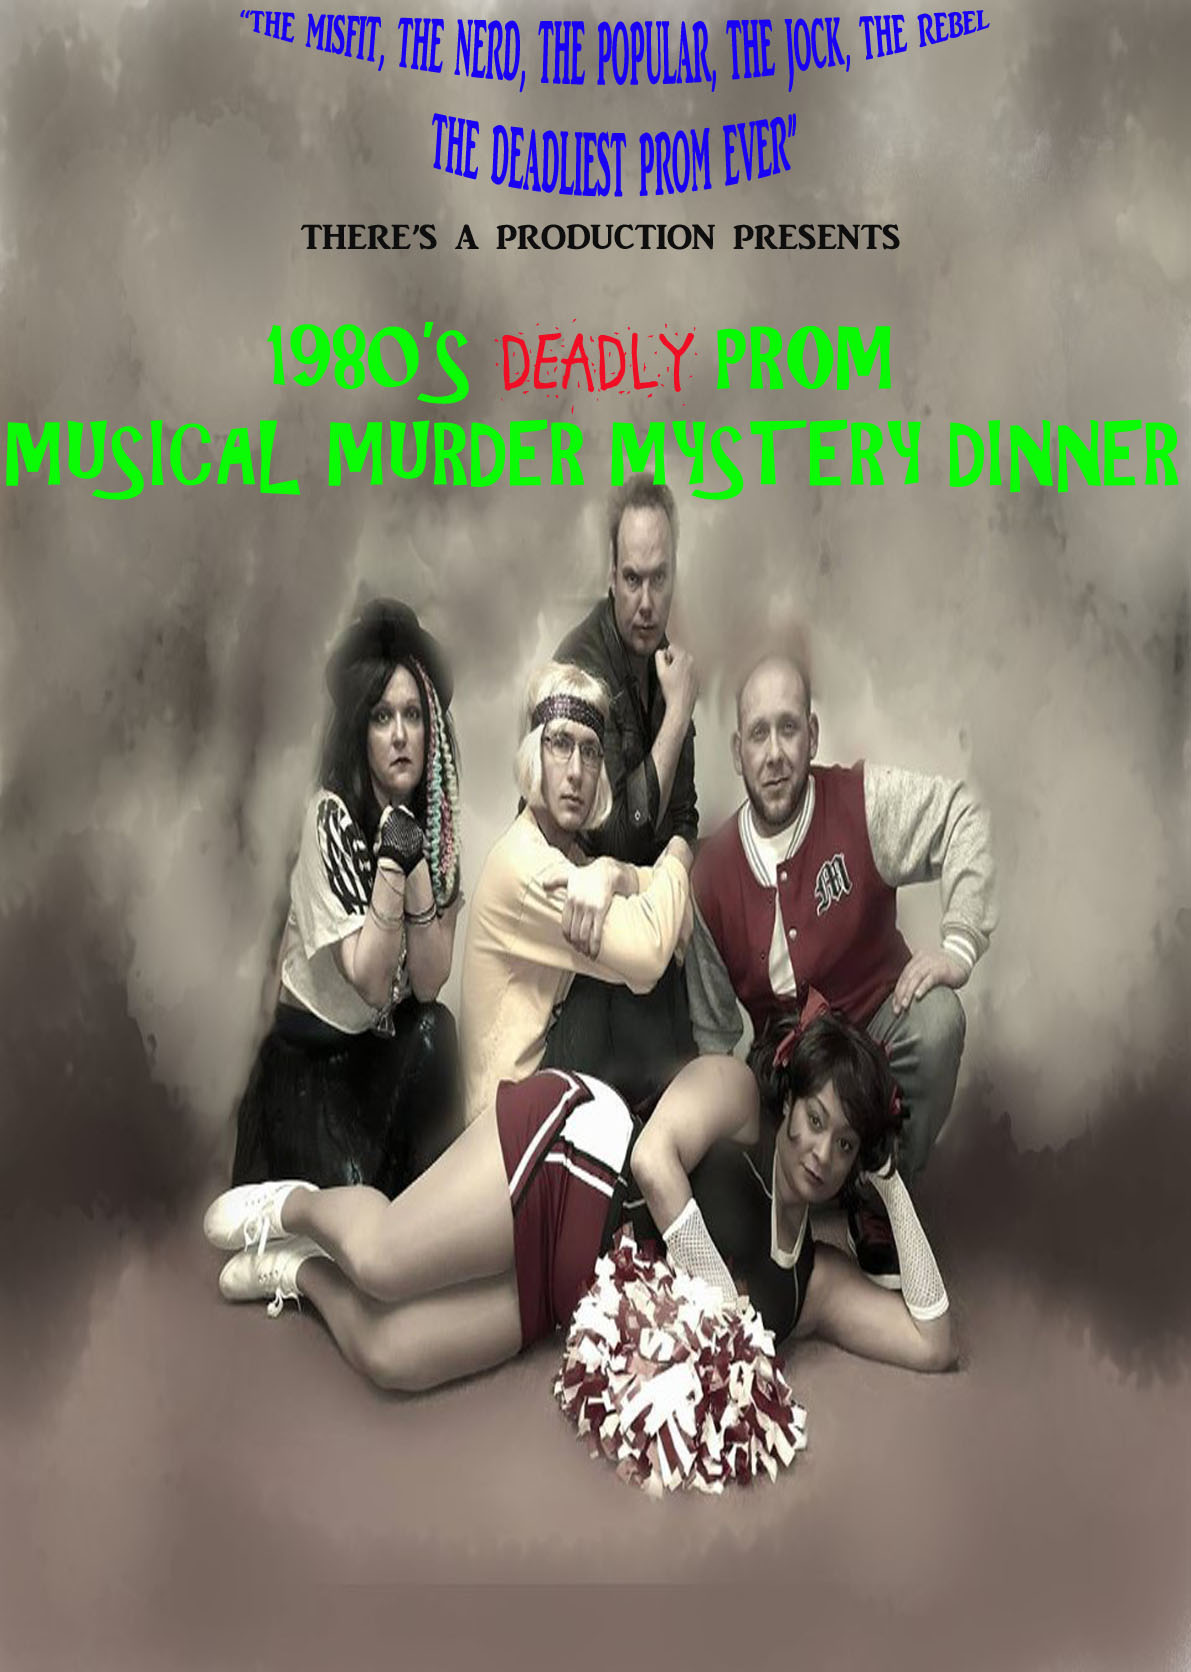 1980's Deadly Prom Musical Murder Mystery Dinner Show